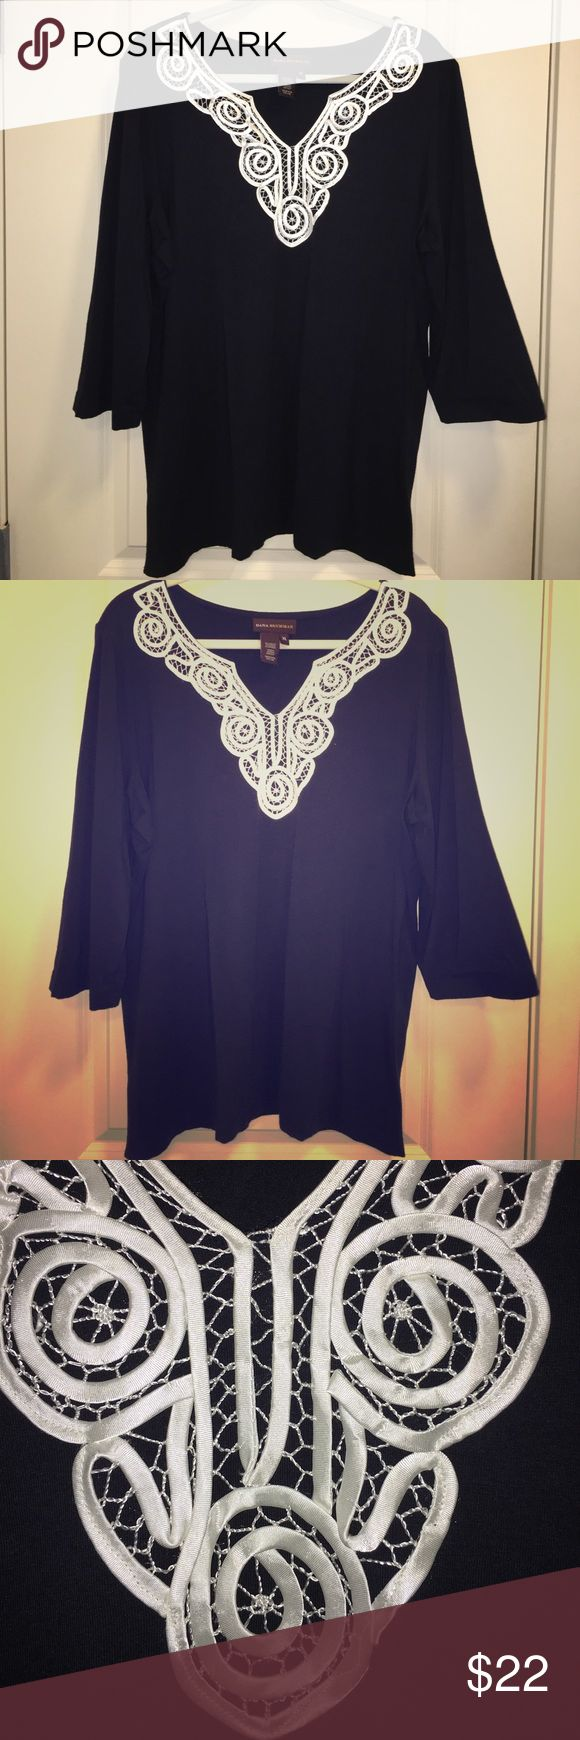 Cotton Dana Buckman Beautiful top. Like New Beautiful Dana Buckman blouse dark navy blue. Cool & light good for warm weather (Church and or party and resort style attire) intricate beautiful embroidery detail on the blouse . No rips no stains no snags no problem .😾Pet and odor free home🐾 1 day shipping 📫day shipping📬 bundle for 10% off🛍 Free gift with purchase 🎁 Tops Blouses